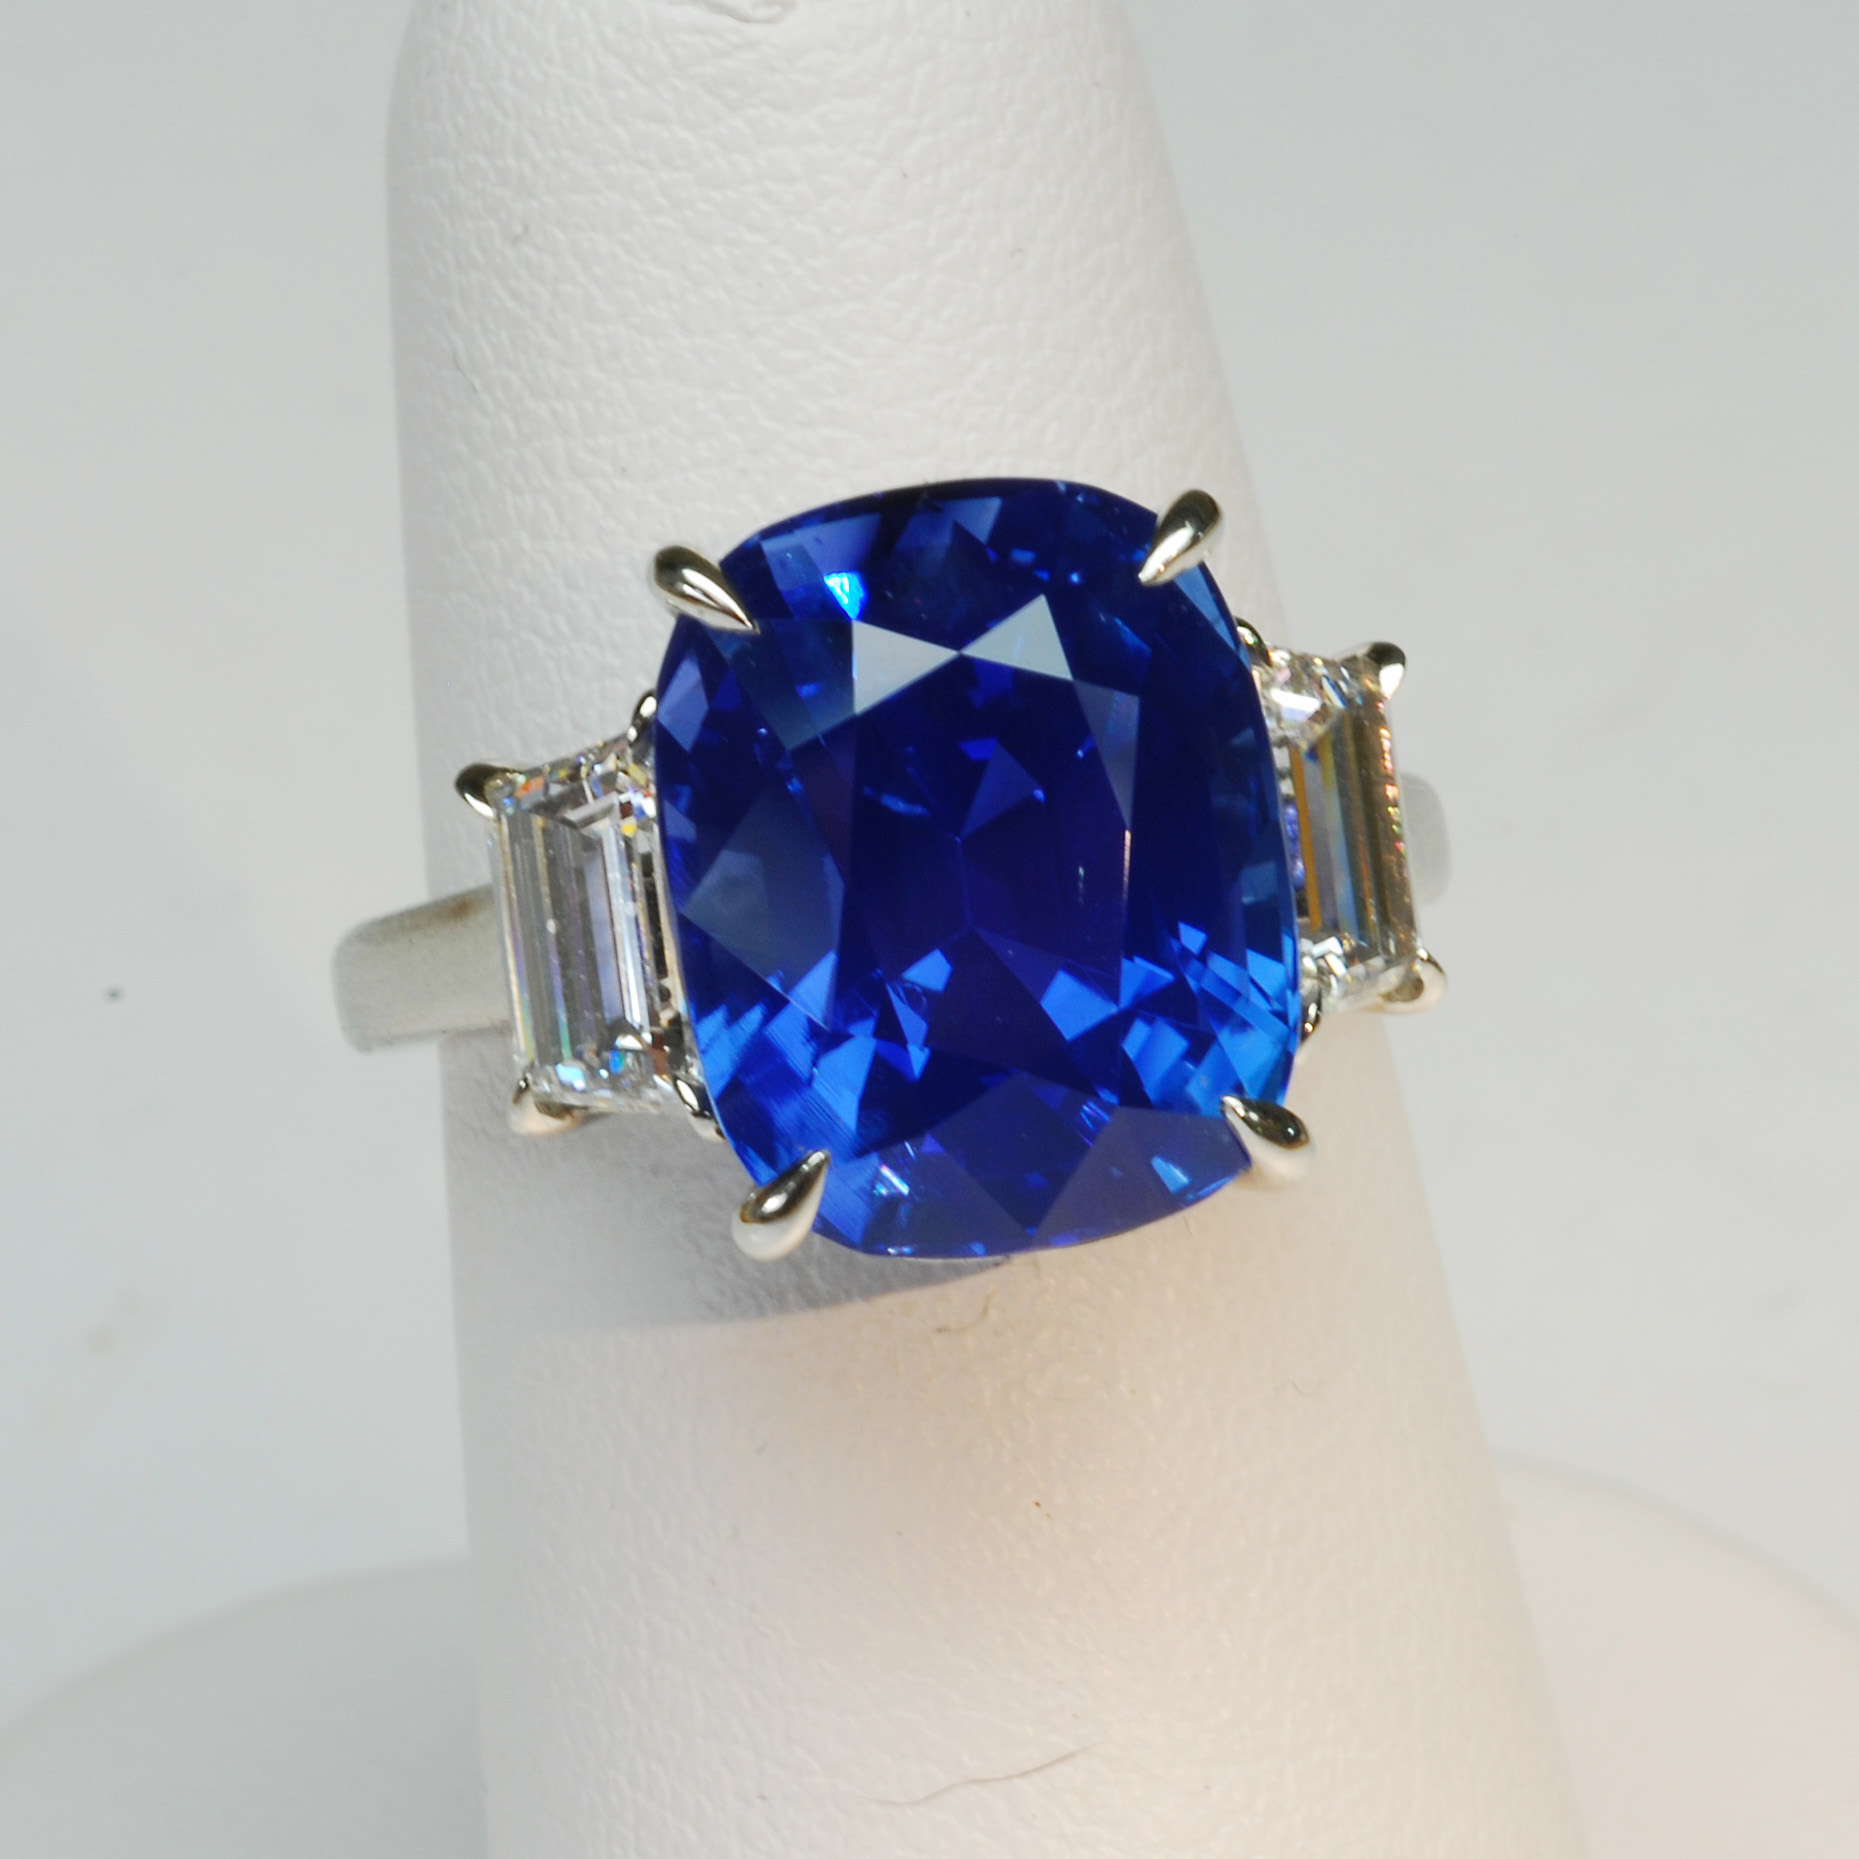 2010 Spectrum Award, Classic Jewelry Division  Plat Guild Intl Honors    10ct Unheated Sapphire